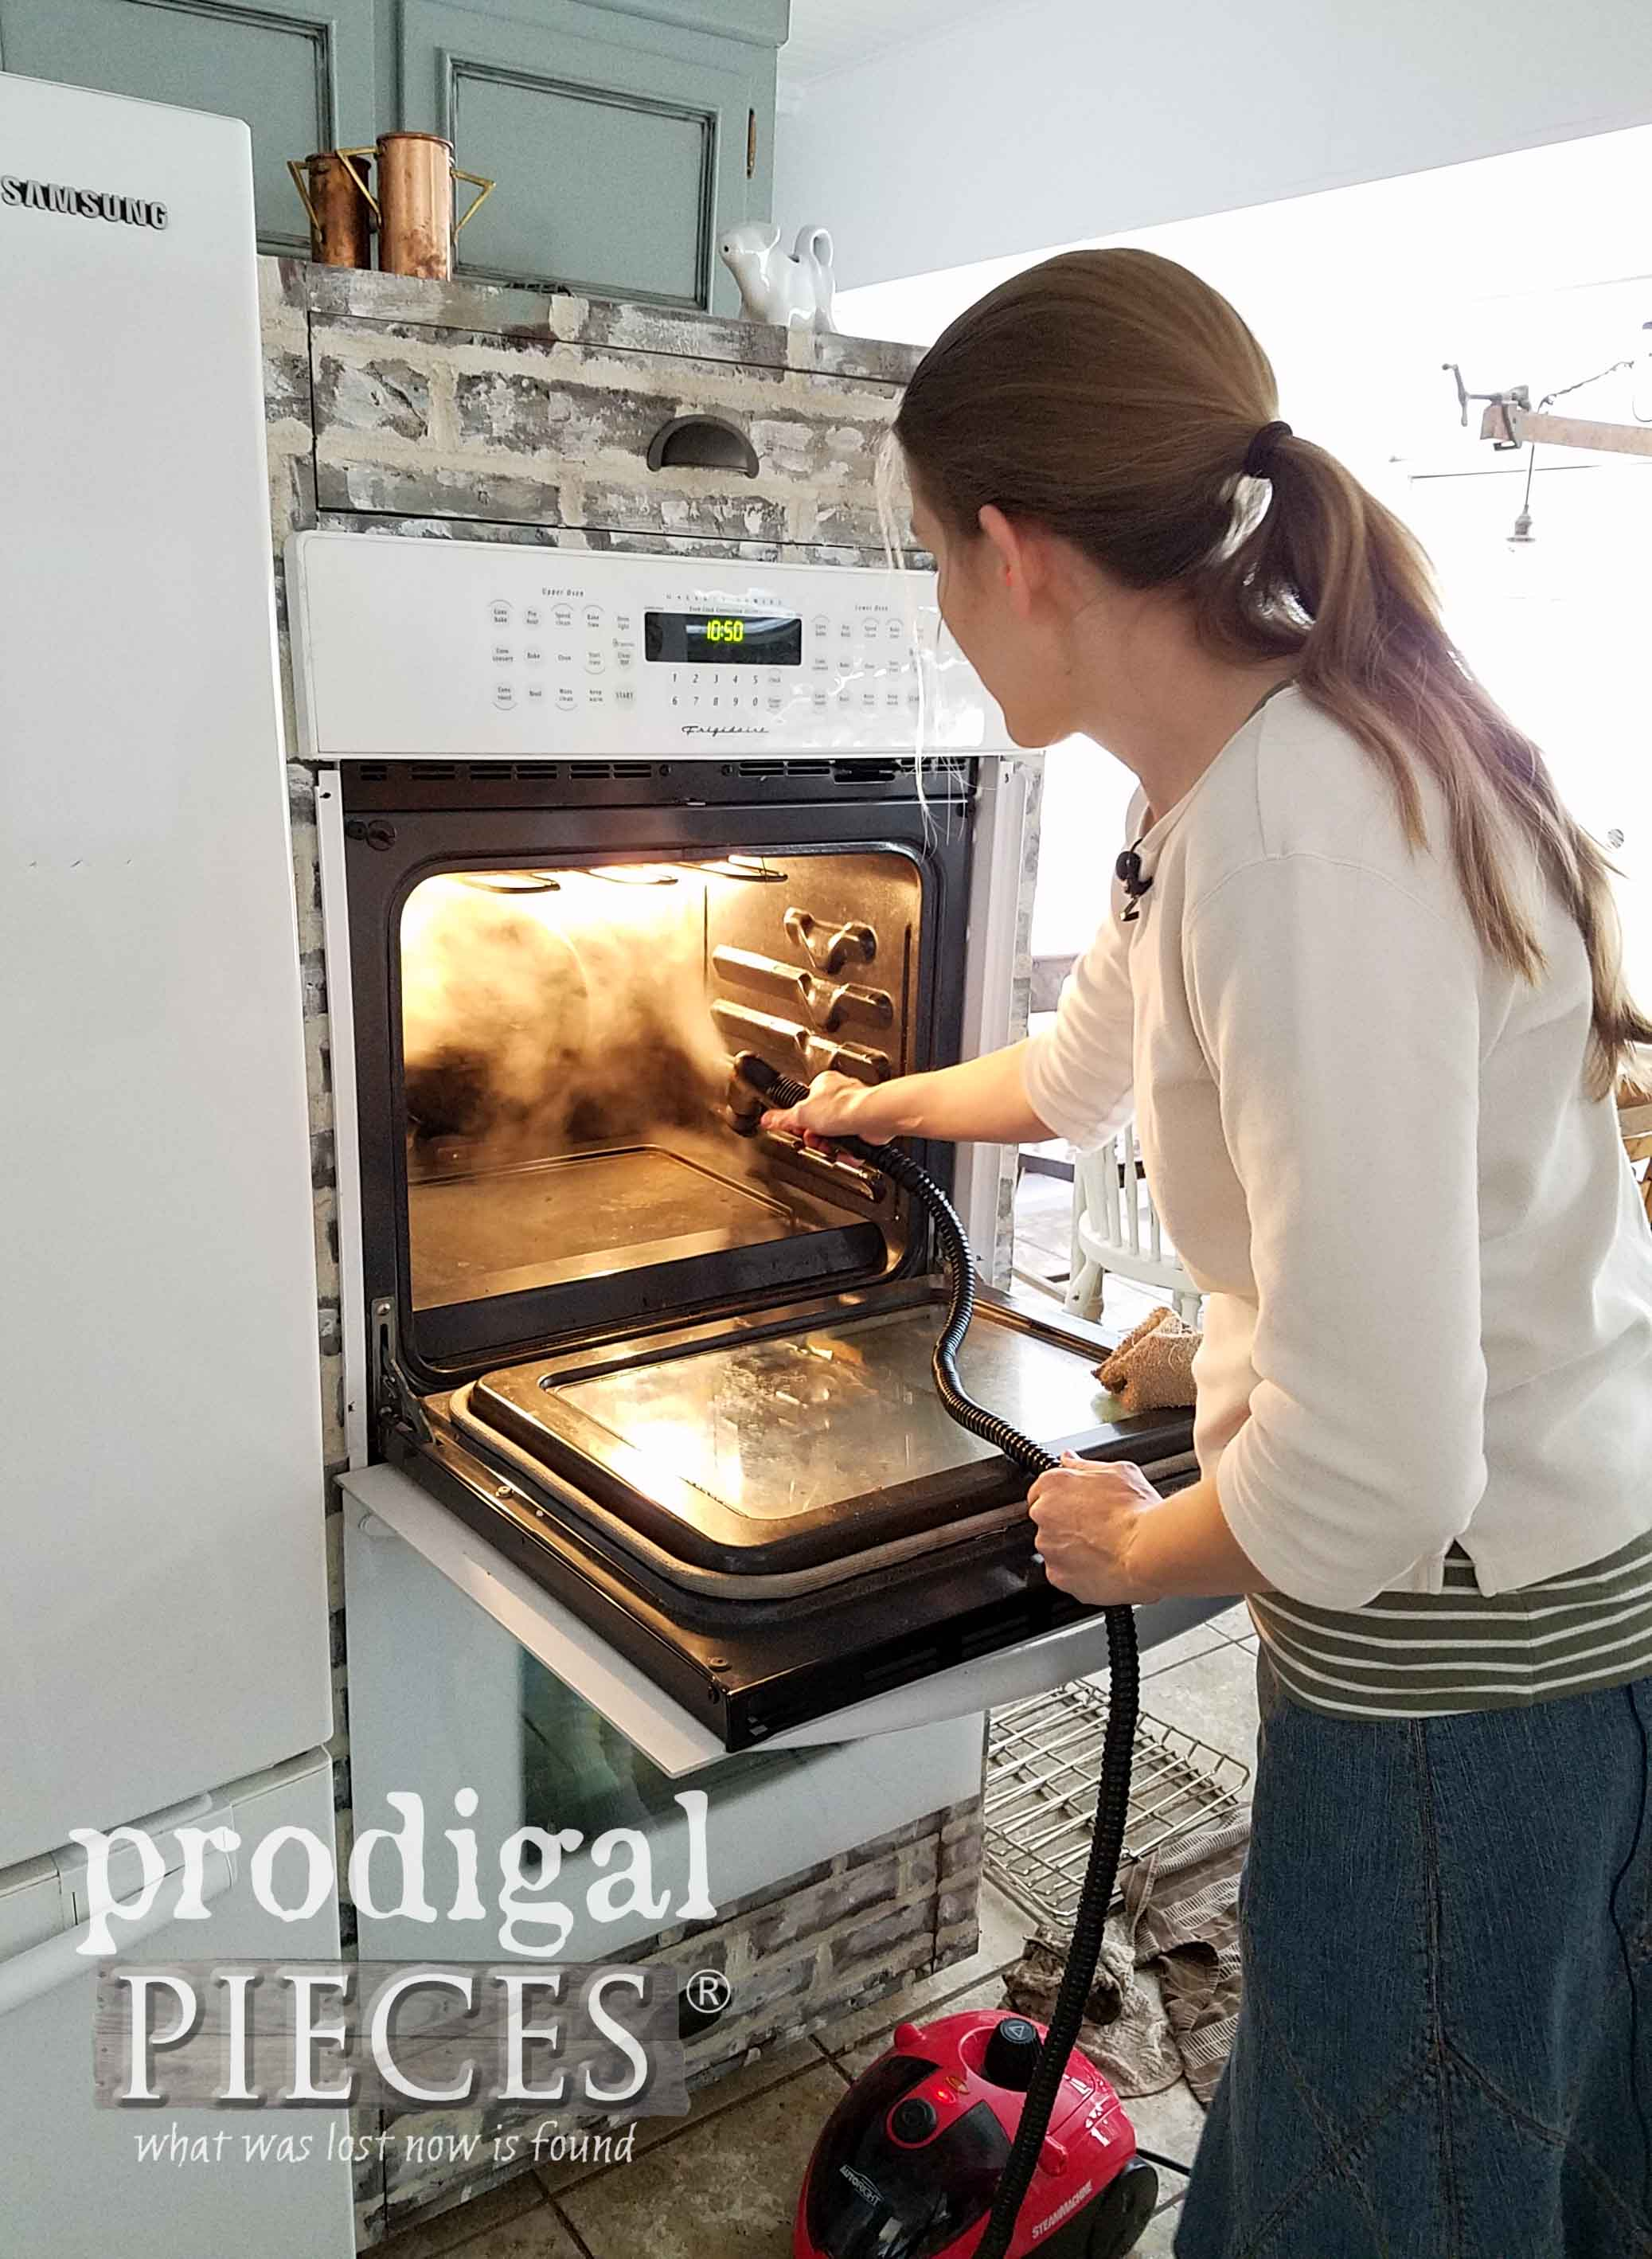 Skip the chemicals and get your oven clean the Fast & Easy way with a HomeRight Steam Machine | Video tutorial by Larissa of Prodigal Pieces | prodigalpieces.com